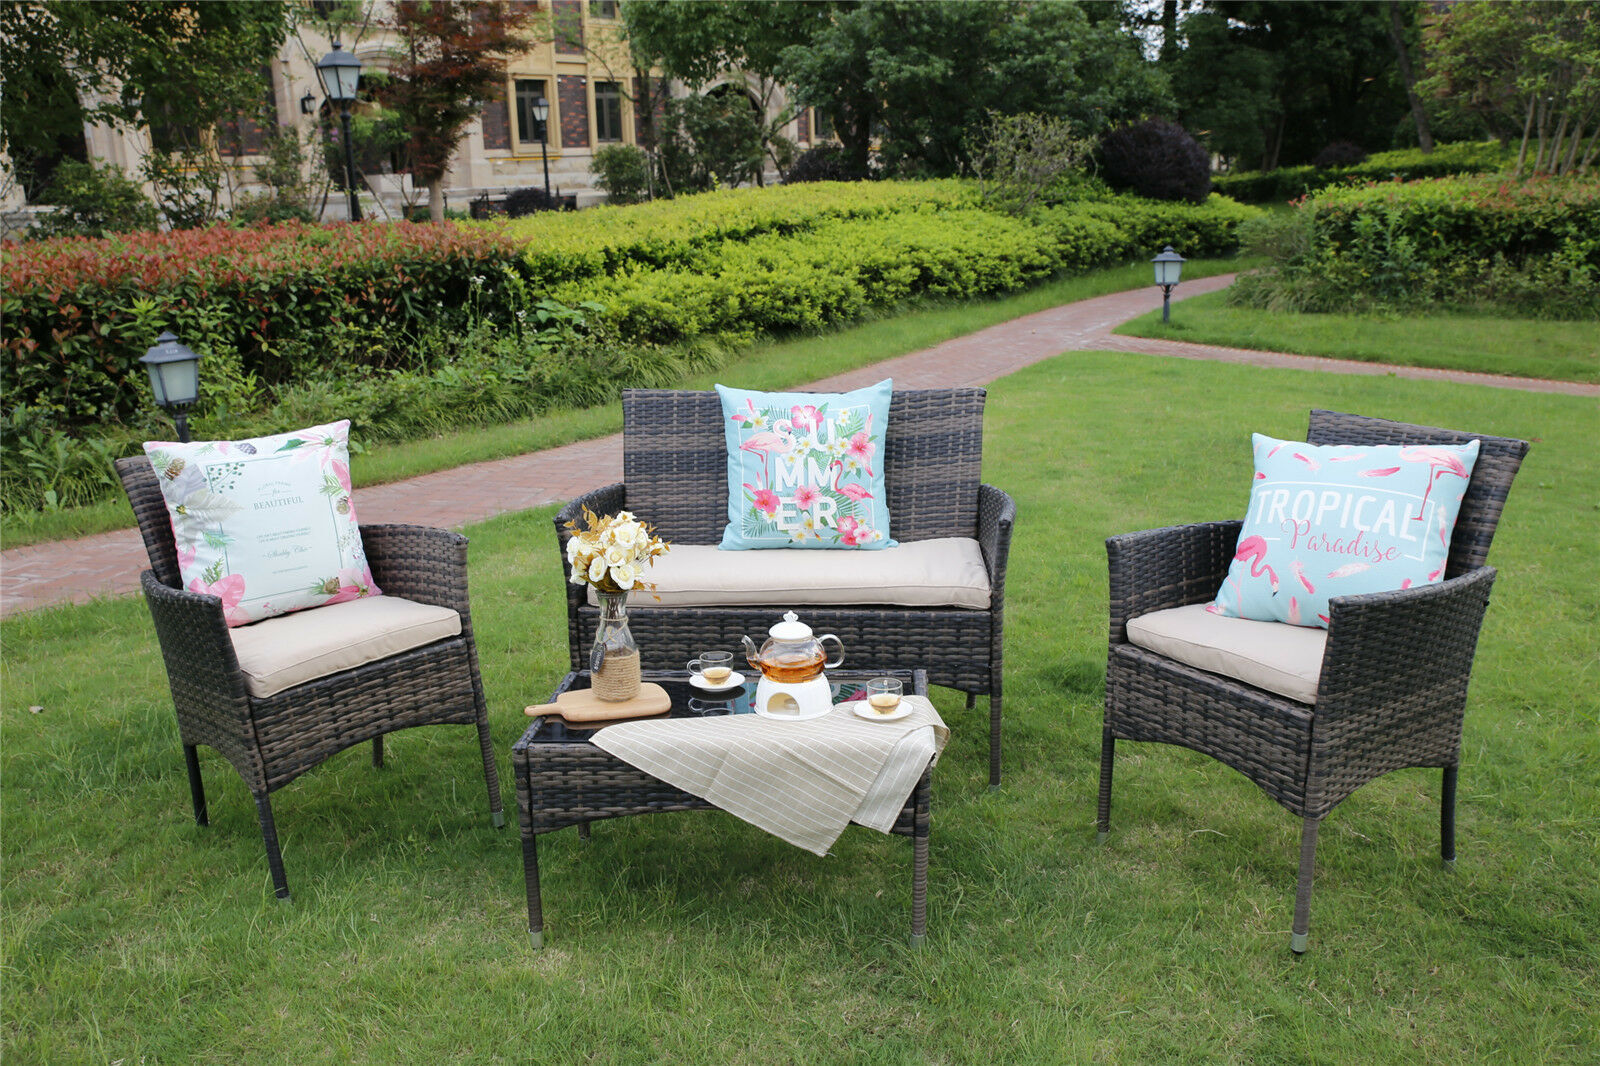 2 armchairsa two seater sofa a coffee table seat cushions small scatter cushions and decorations are not included